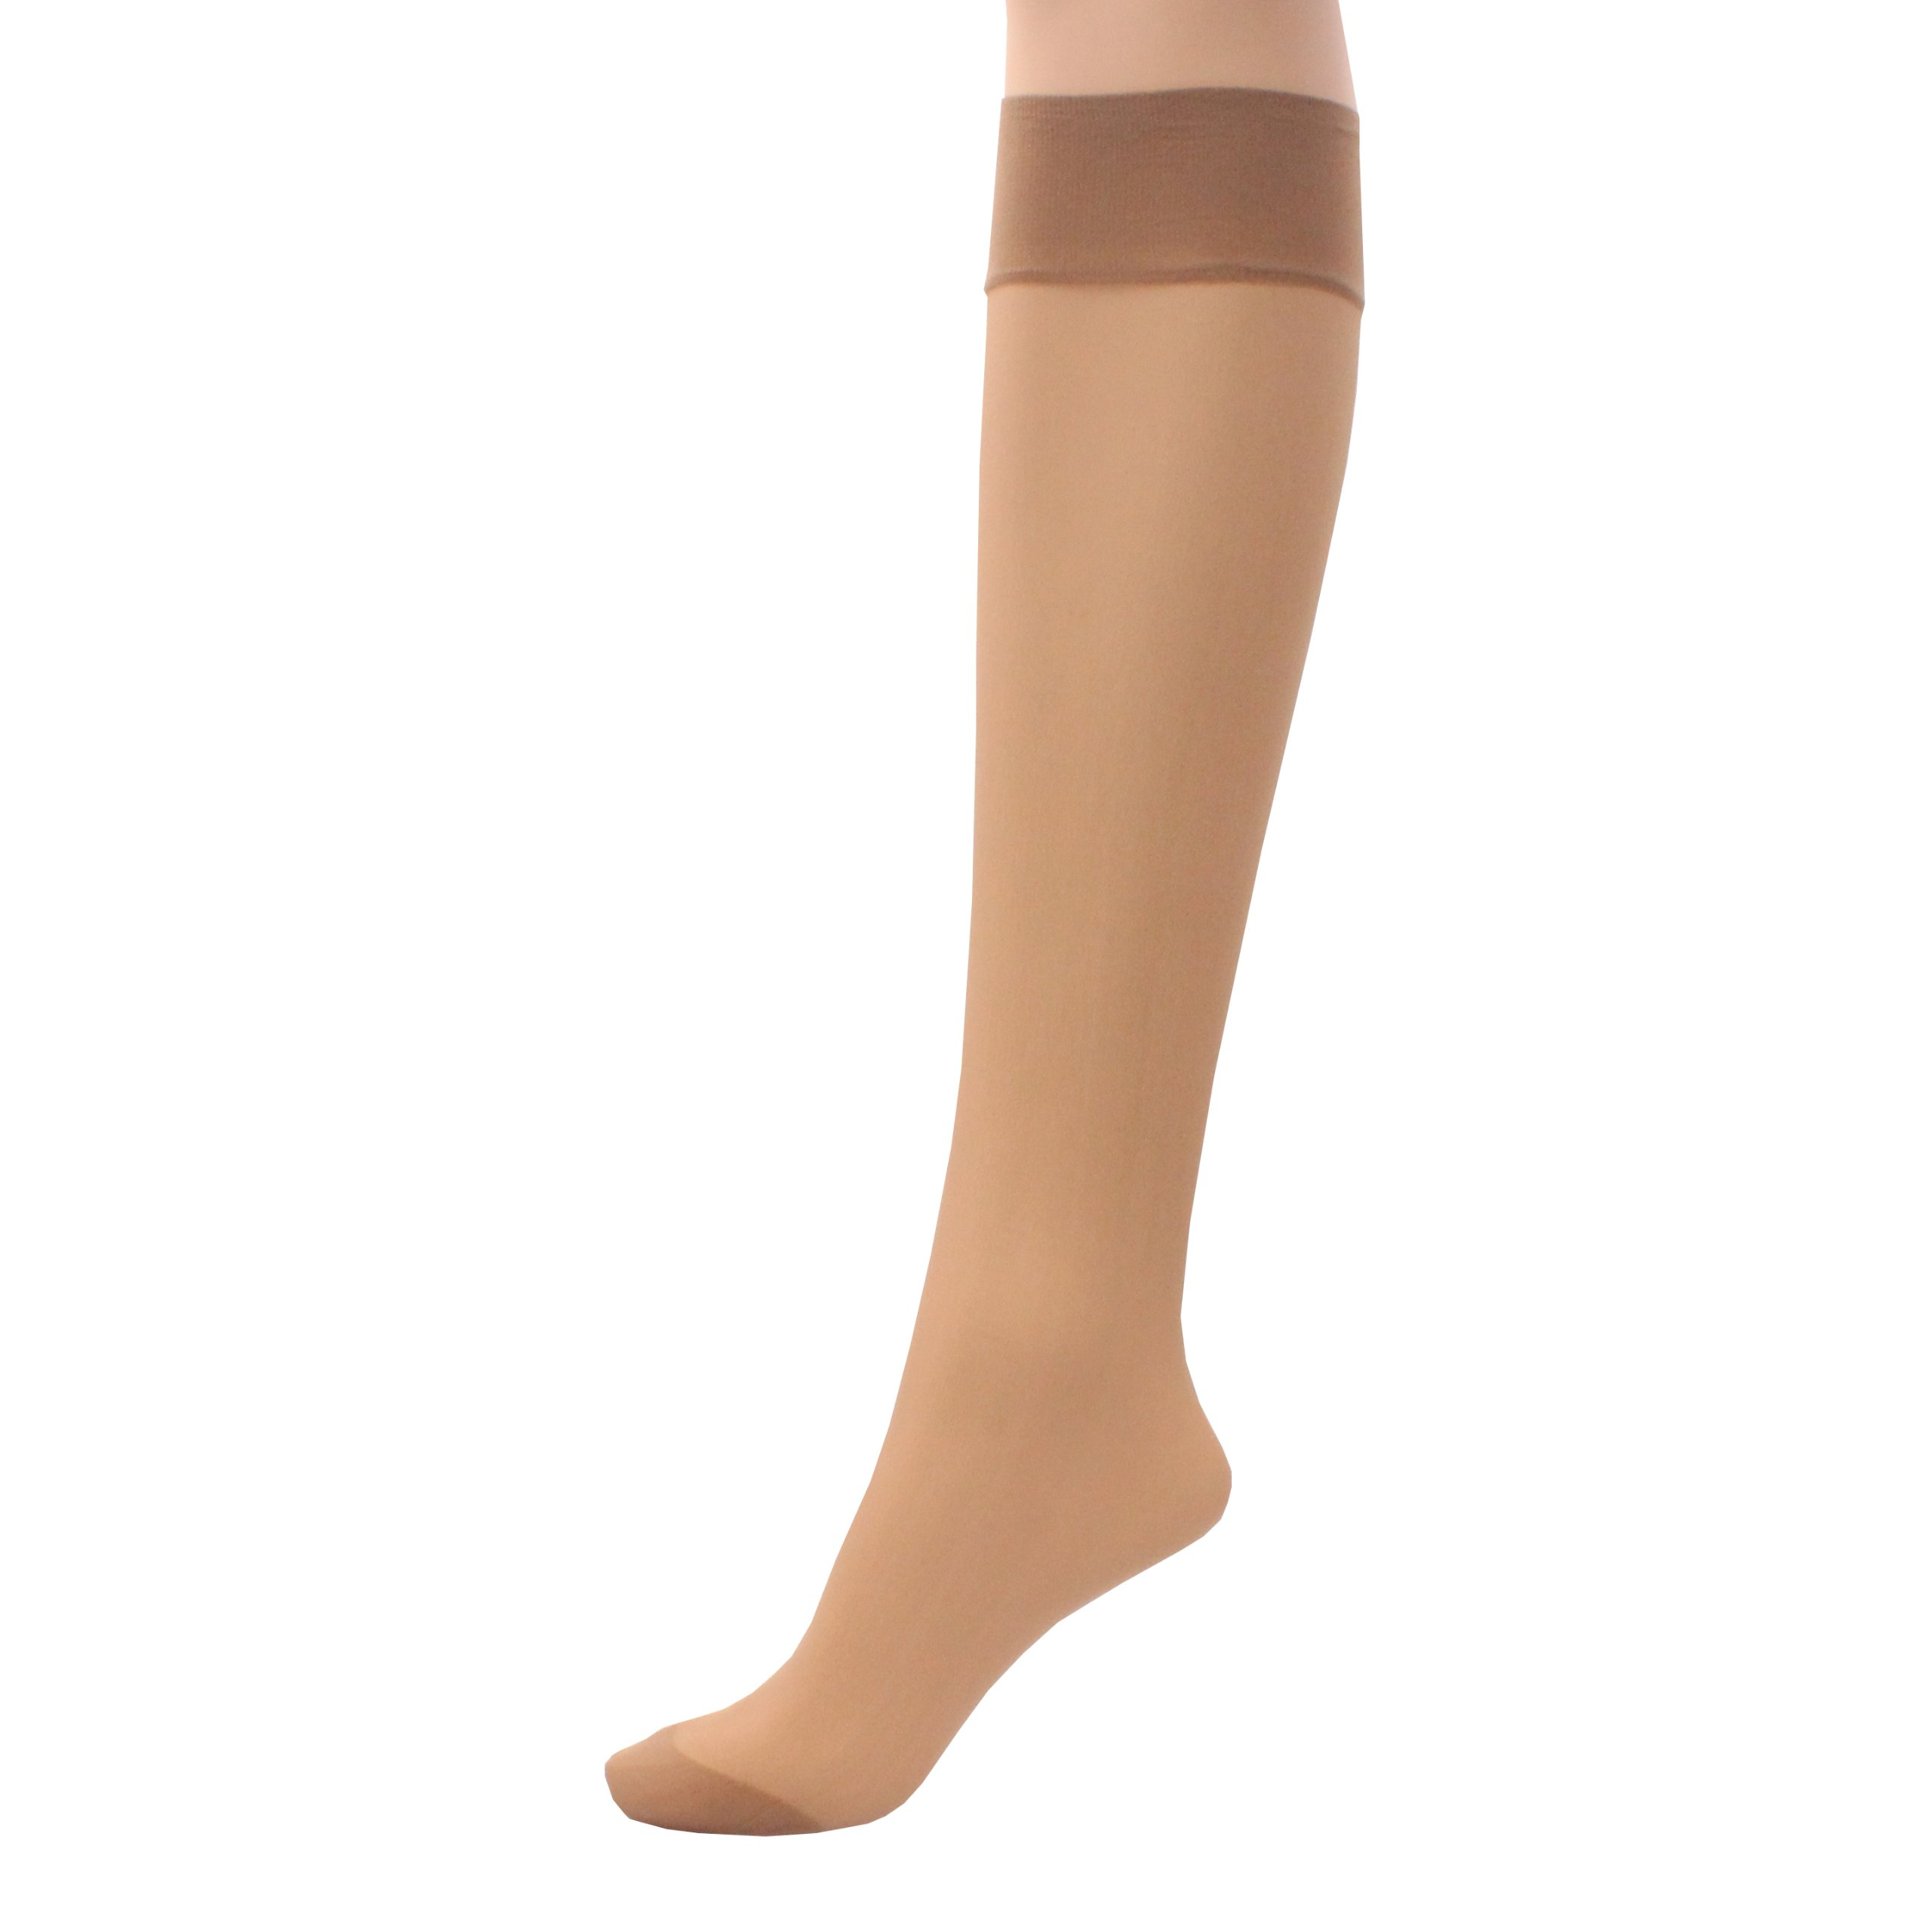 NEW LADIES KNEE HIGH POP COTTON SOCKS ASSORTED COLOURS BACK TO SCHOOL GIRL 4-6.5